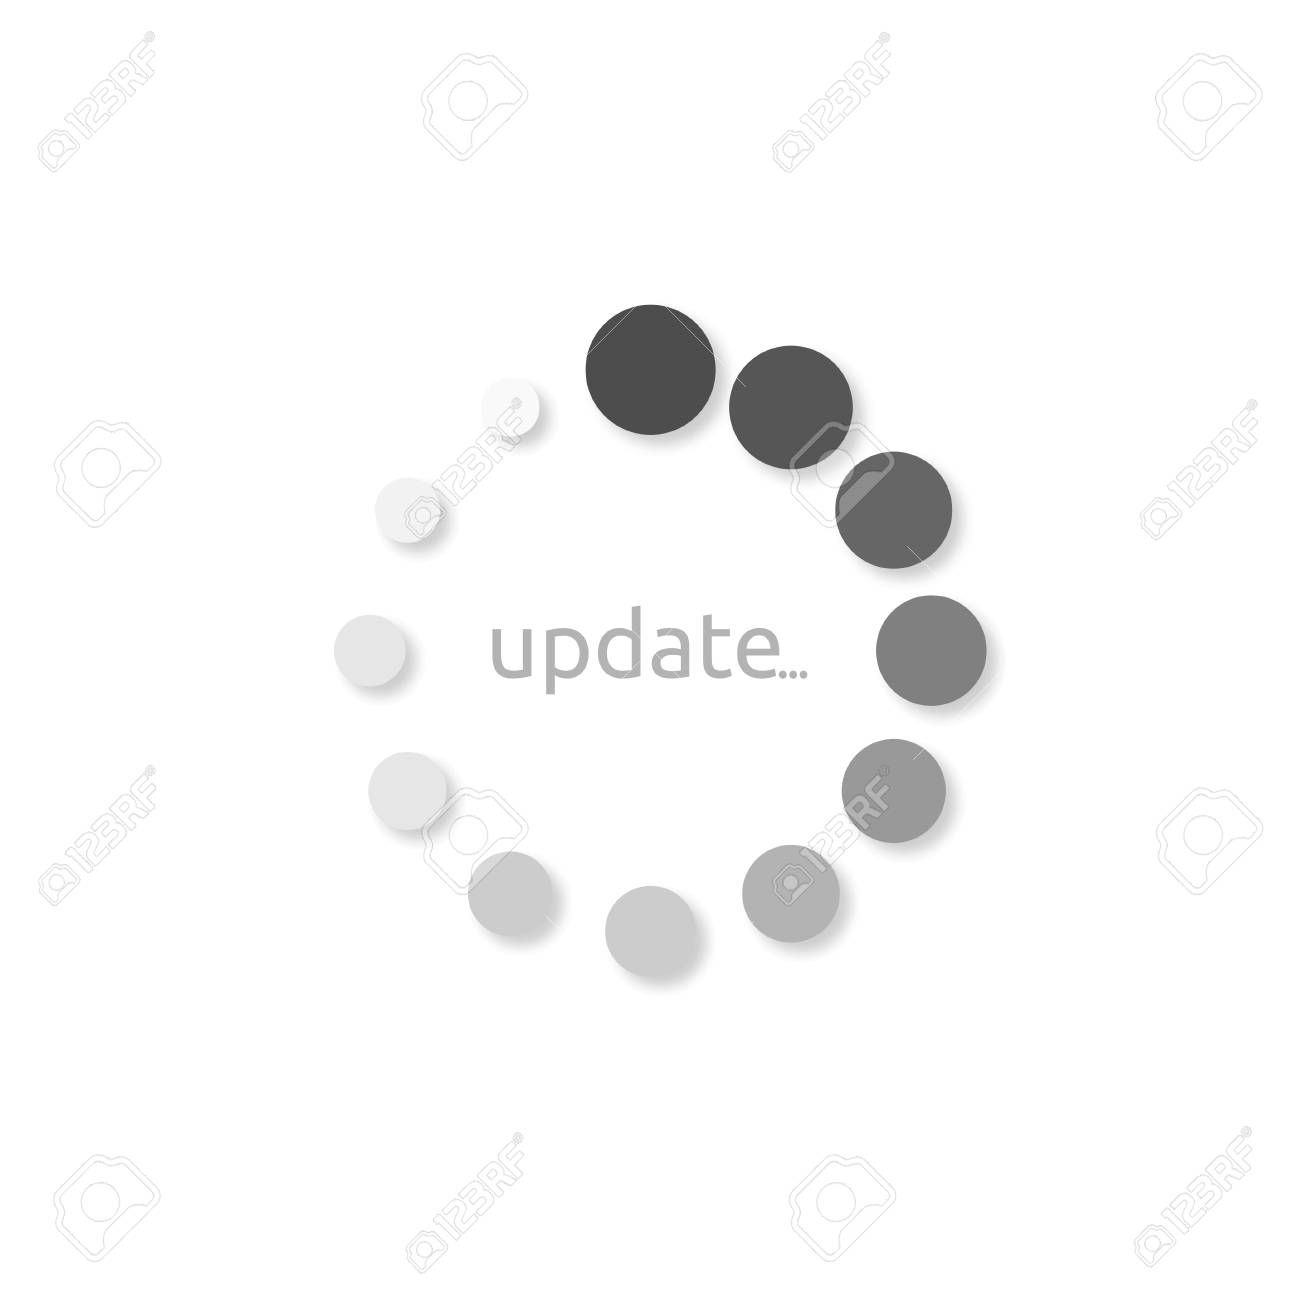 Icon install update, style design on white background - 88944118